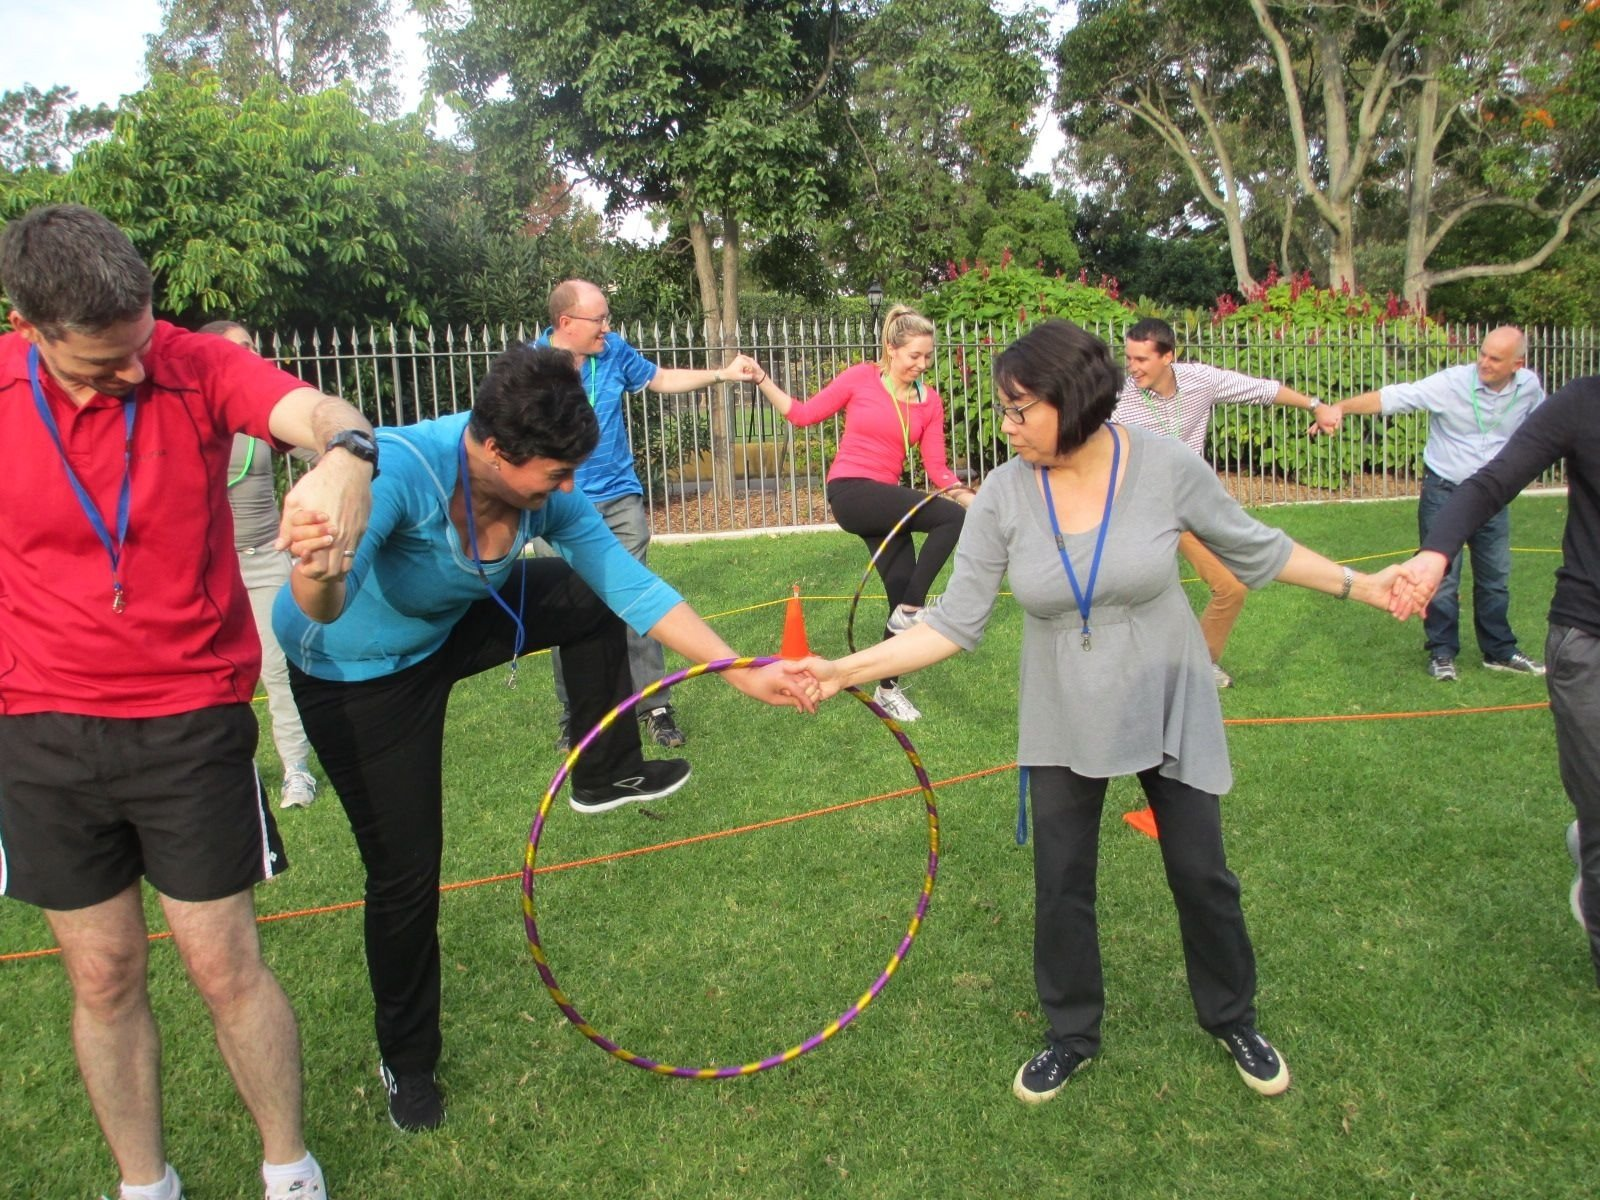 10 Most Recommended Ideas For Team Building Activities outdoor team building outdoor team building activities olympics 2 2021